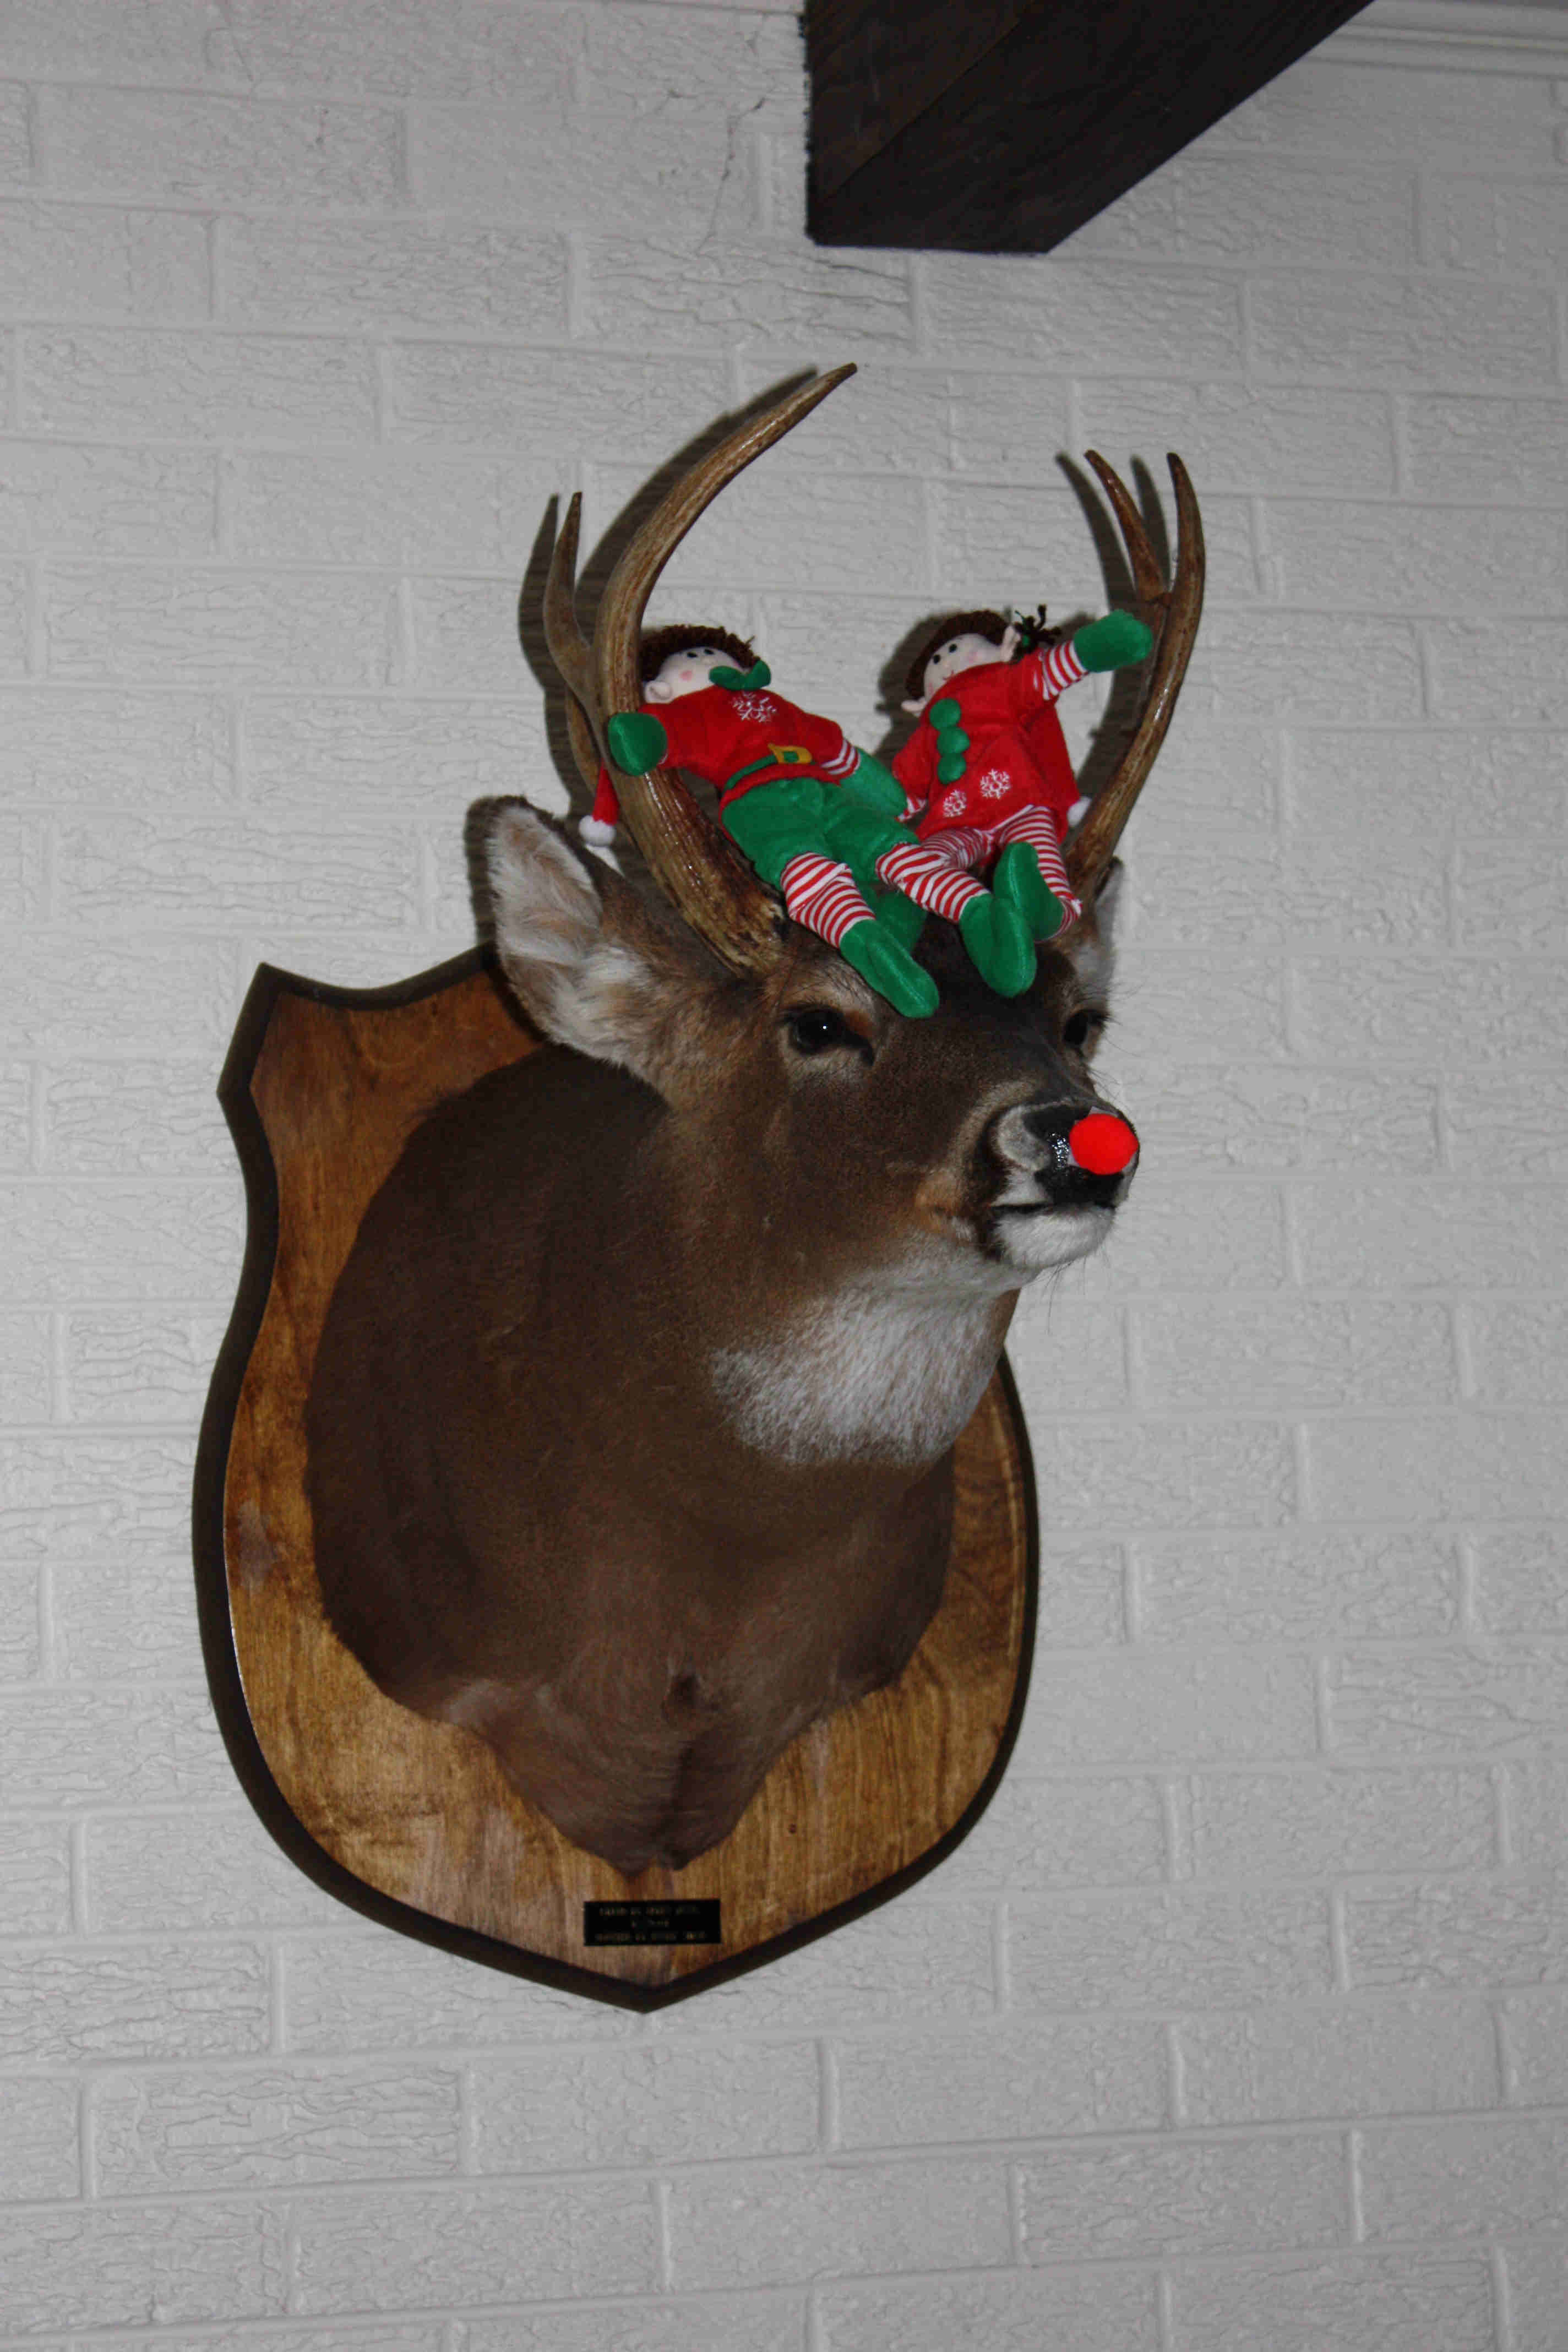 This deer reminded the elves of Rudolph